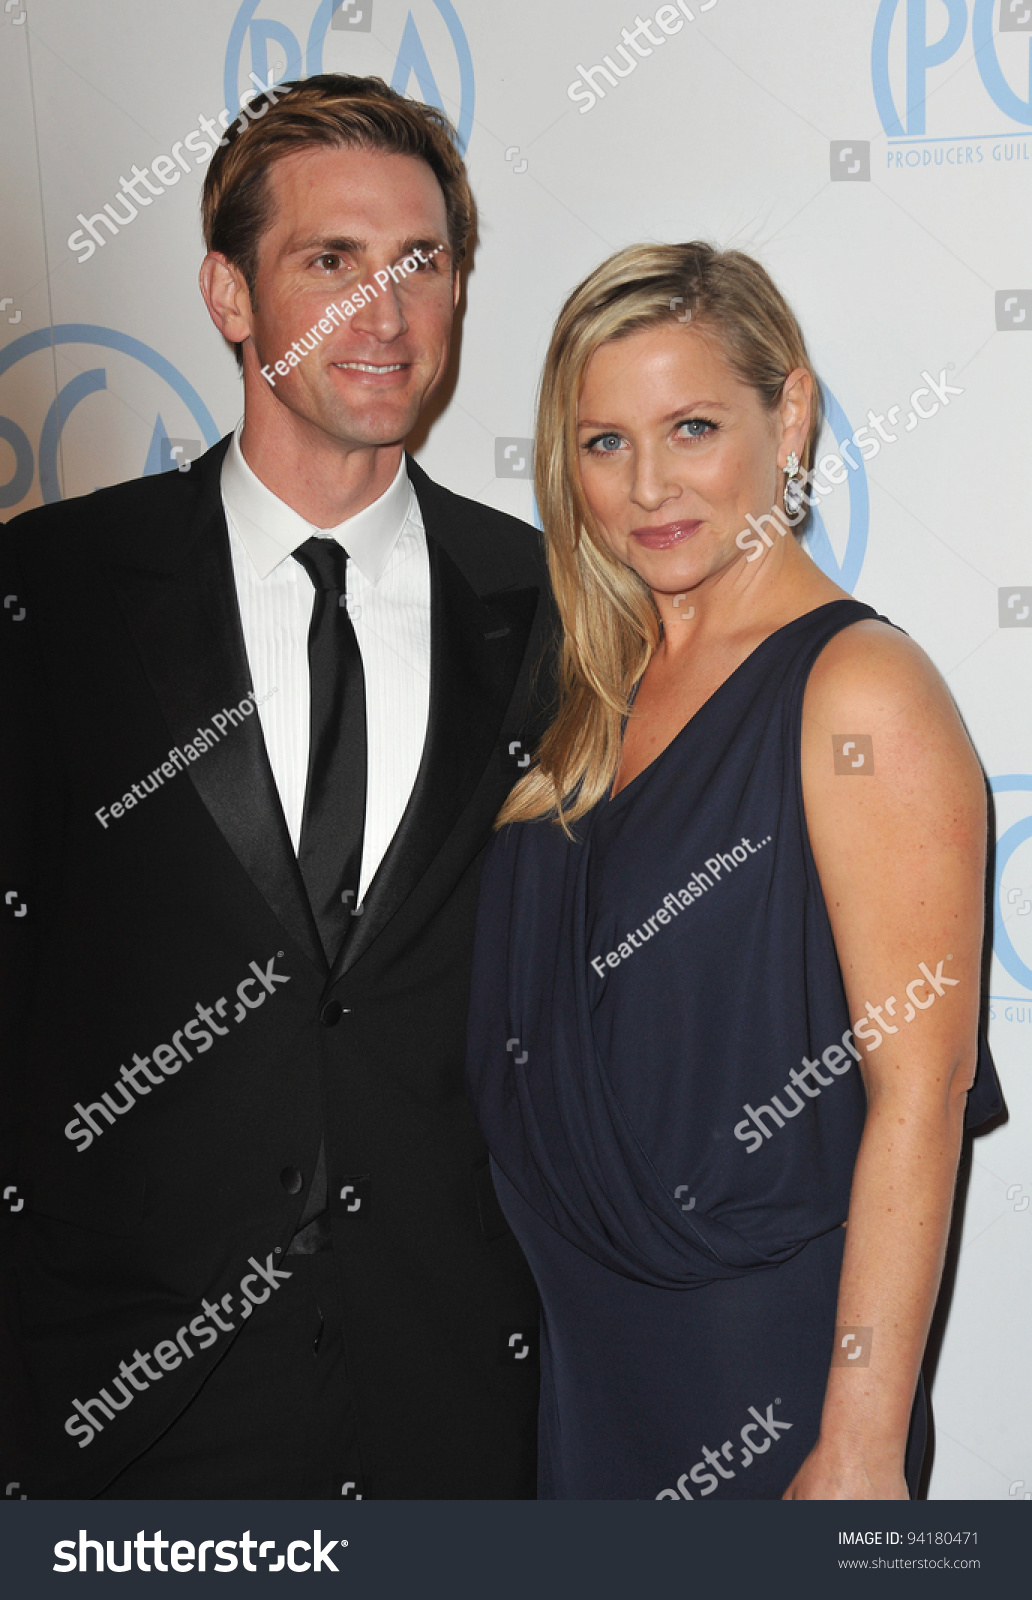 Gallery For > Christopher Gavigan And Jessica Capshaw